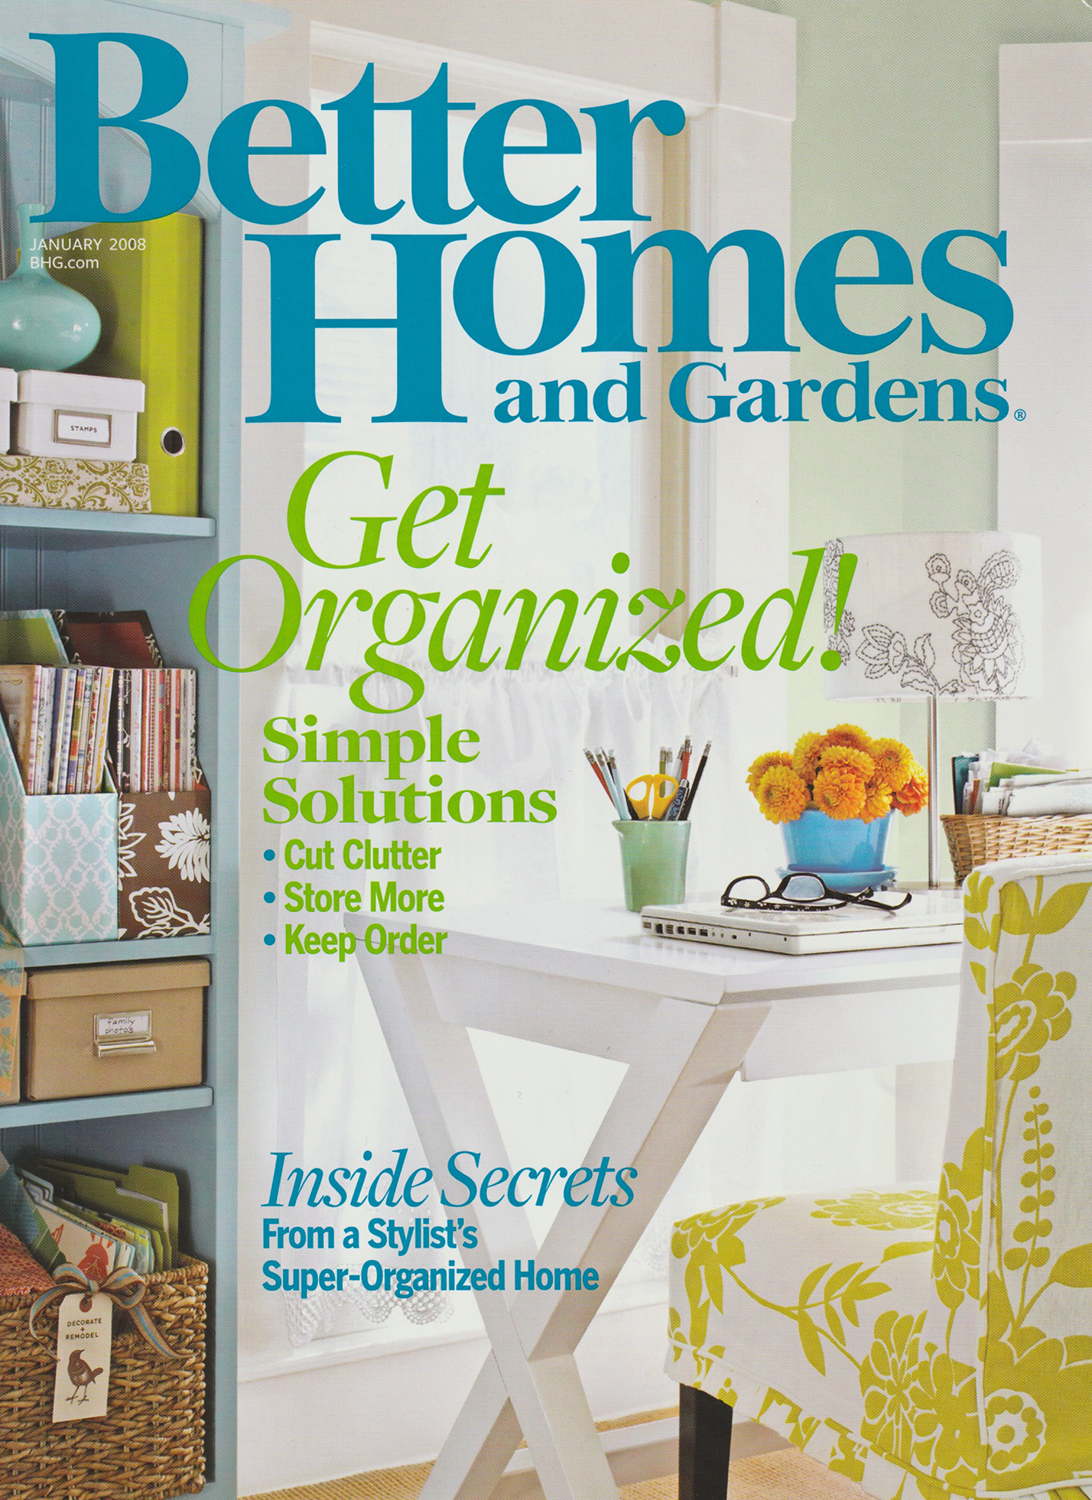 Better Homes and Gardens Jan 2008, cover.jpeg